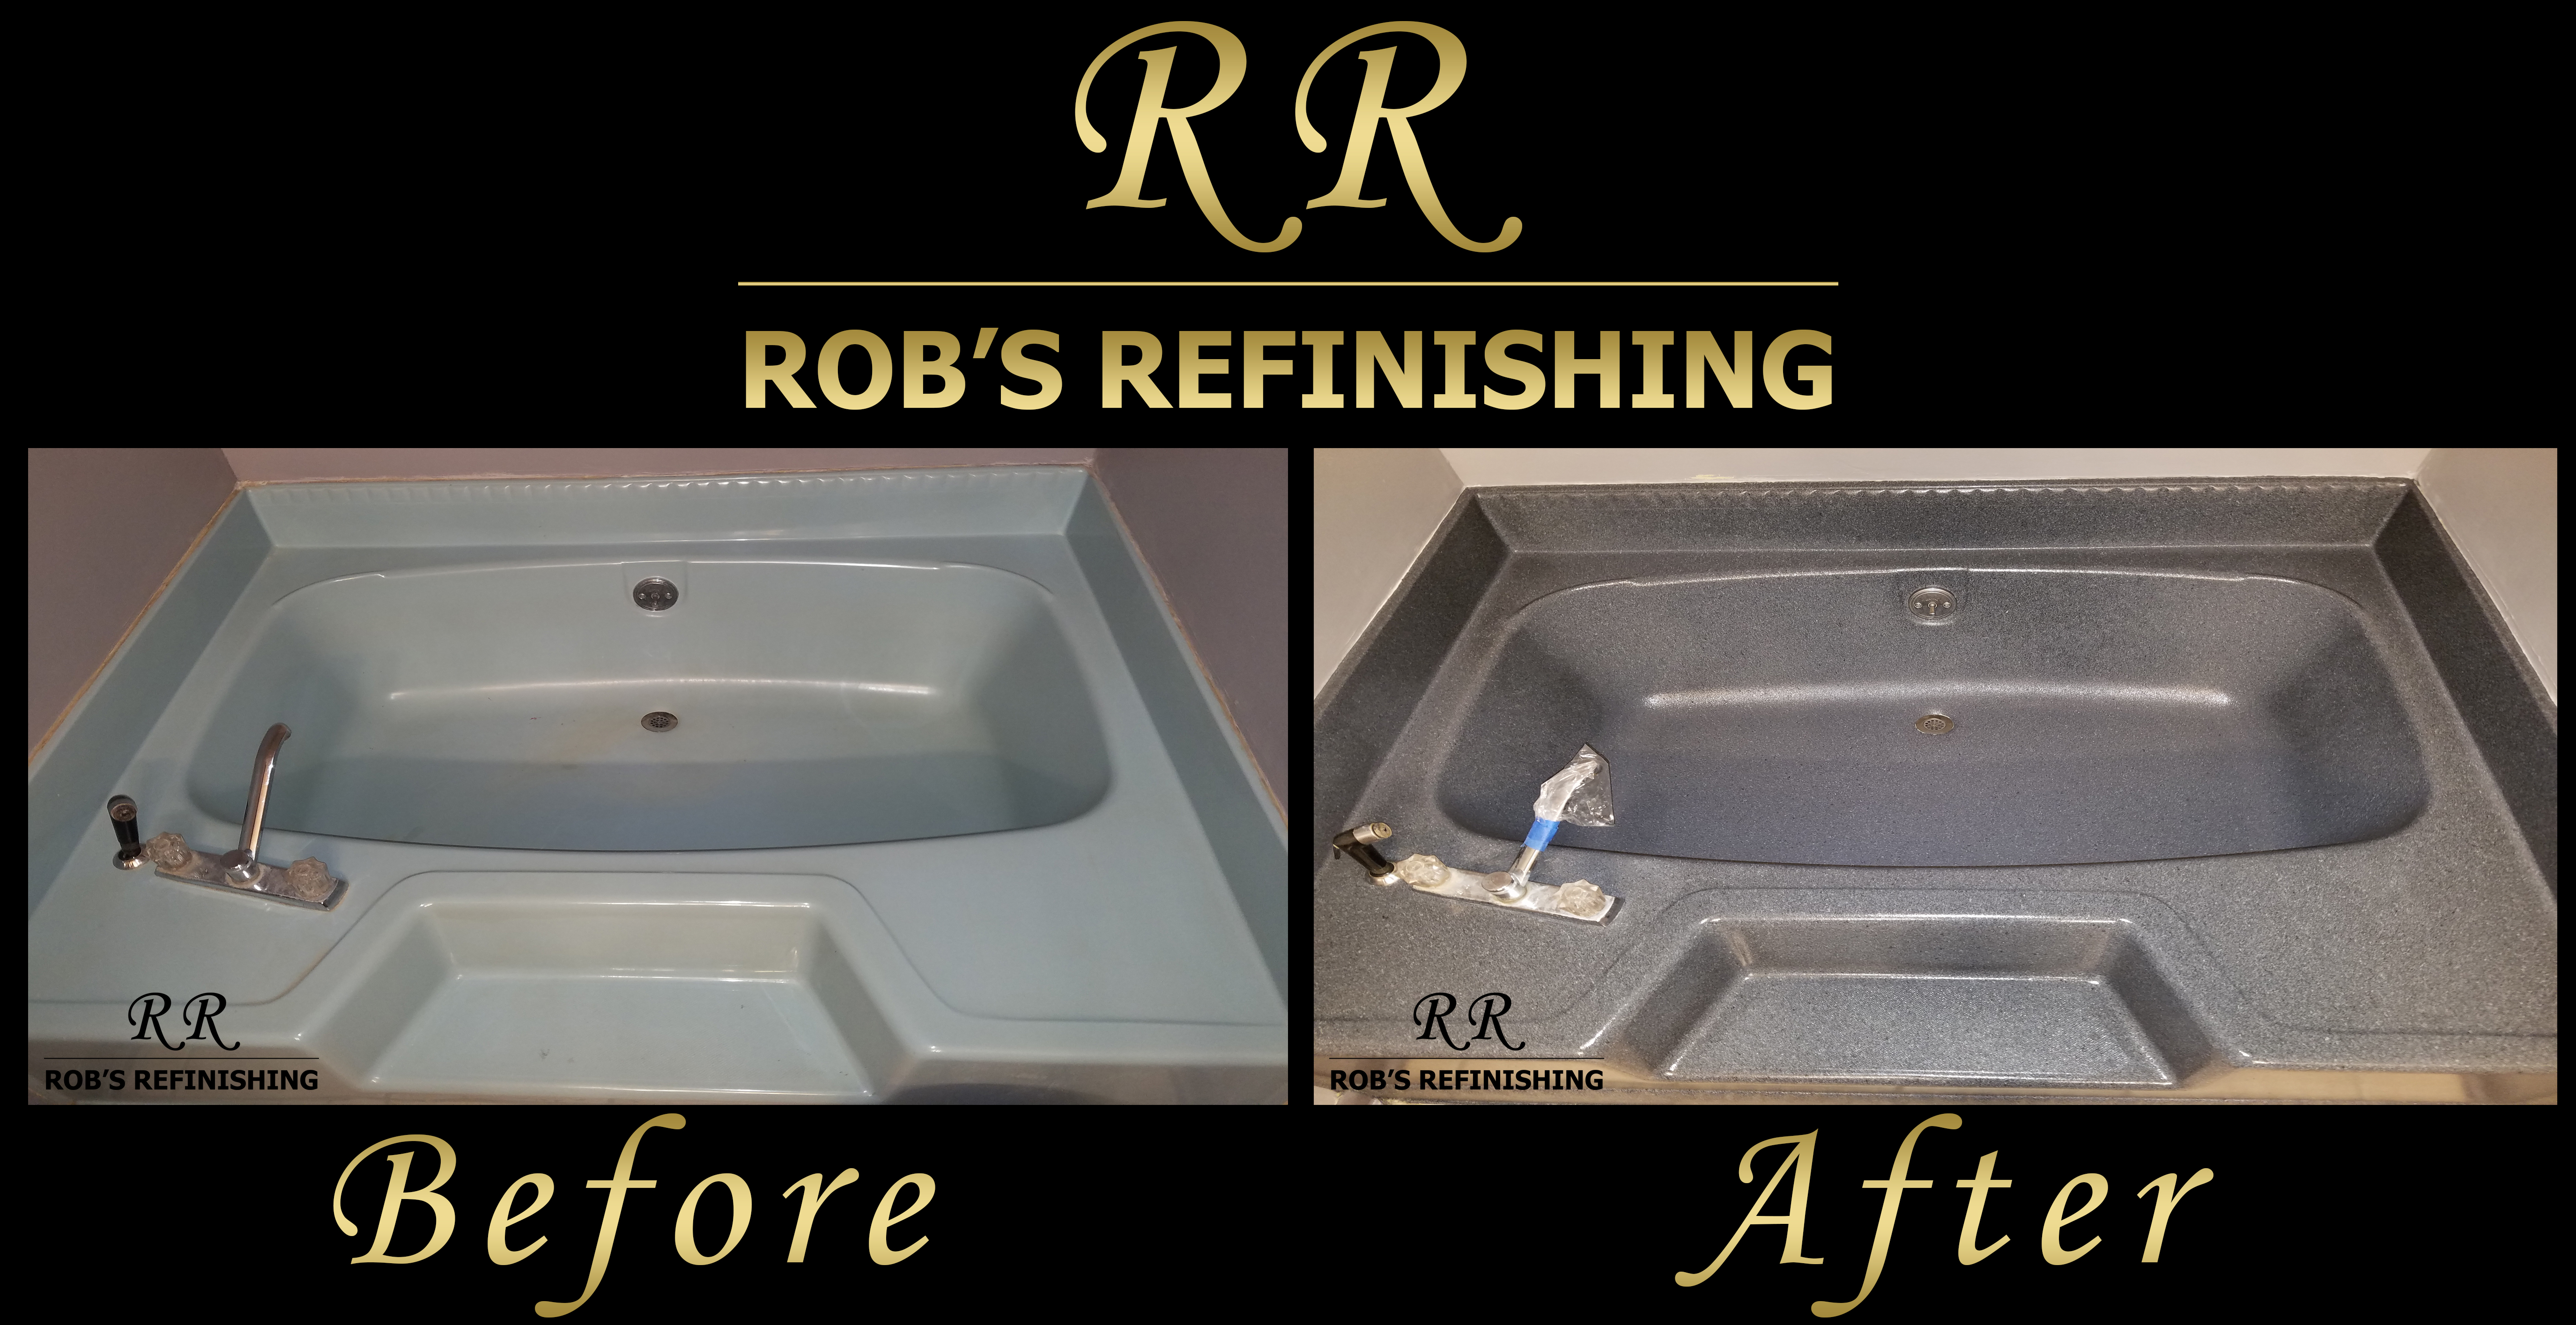 robsrefinishing refinish kitchen sink Previous Next Close